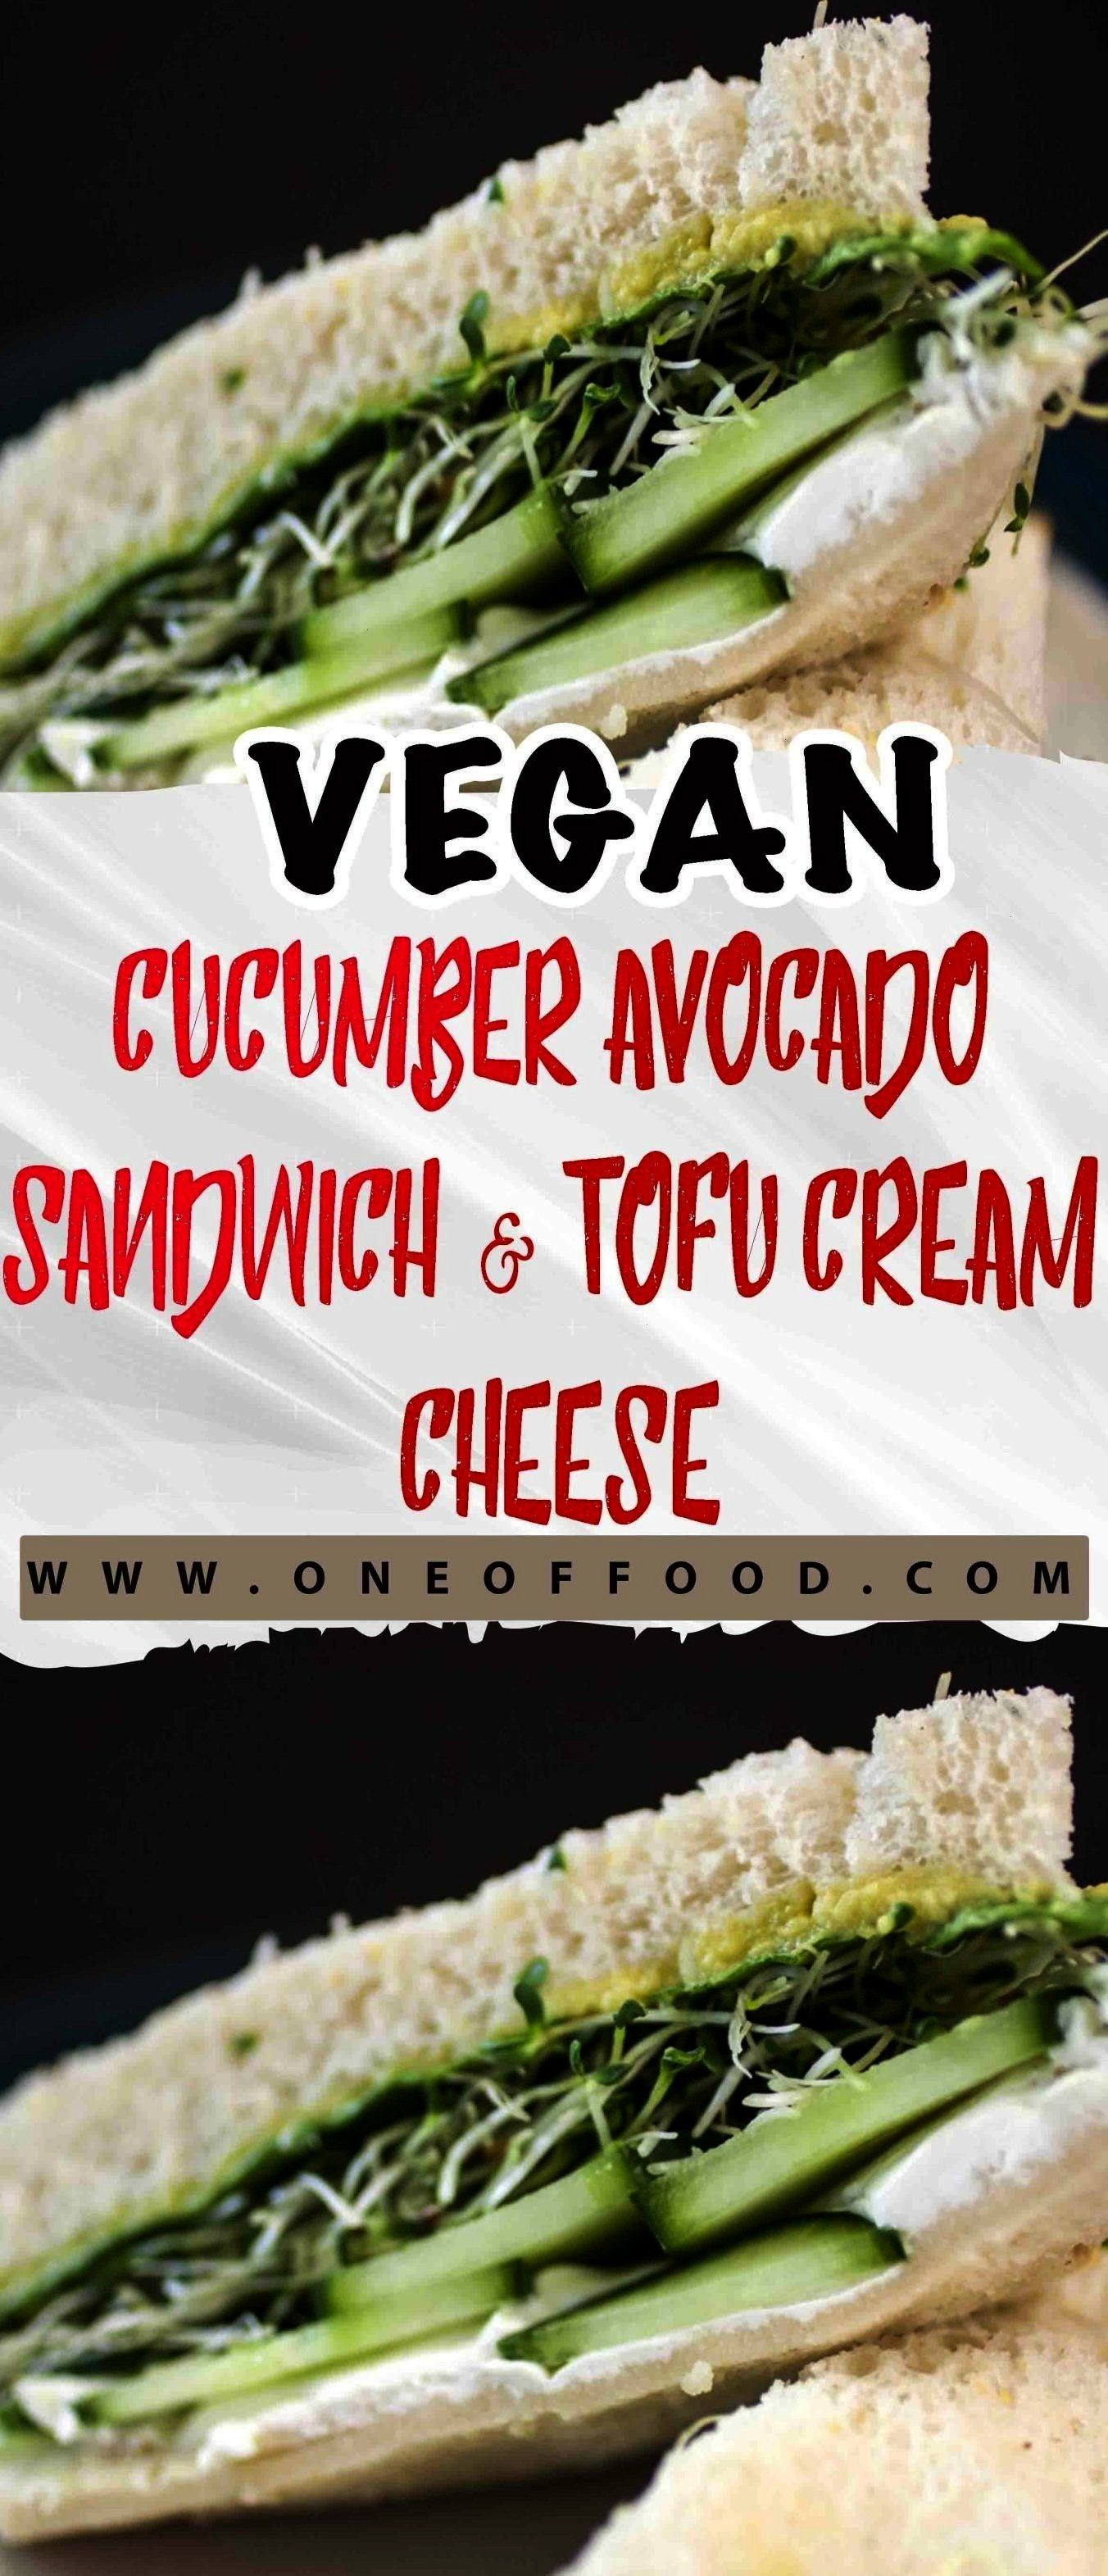 Cucumber Avocado Sandwich with Tofu Cream Cheese has it all! It's an easy, tasty lunch t... This